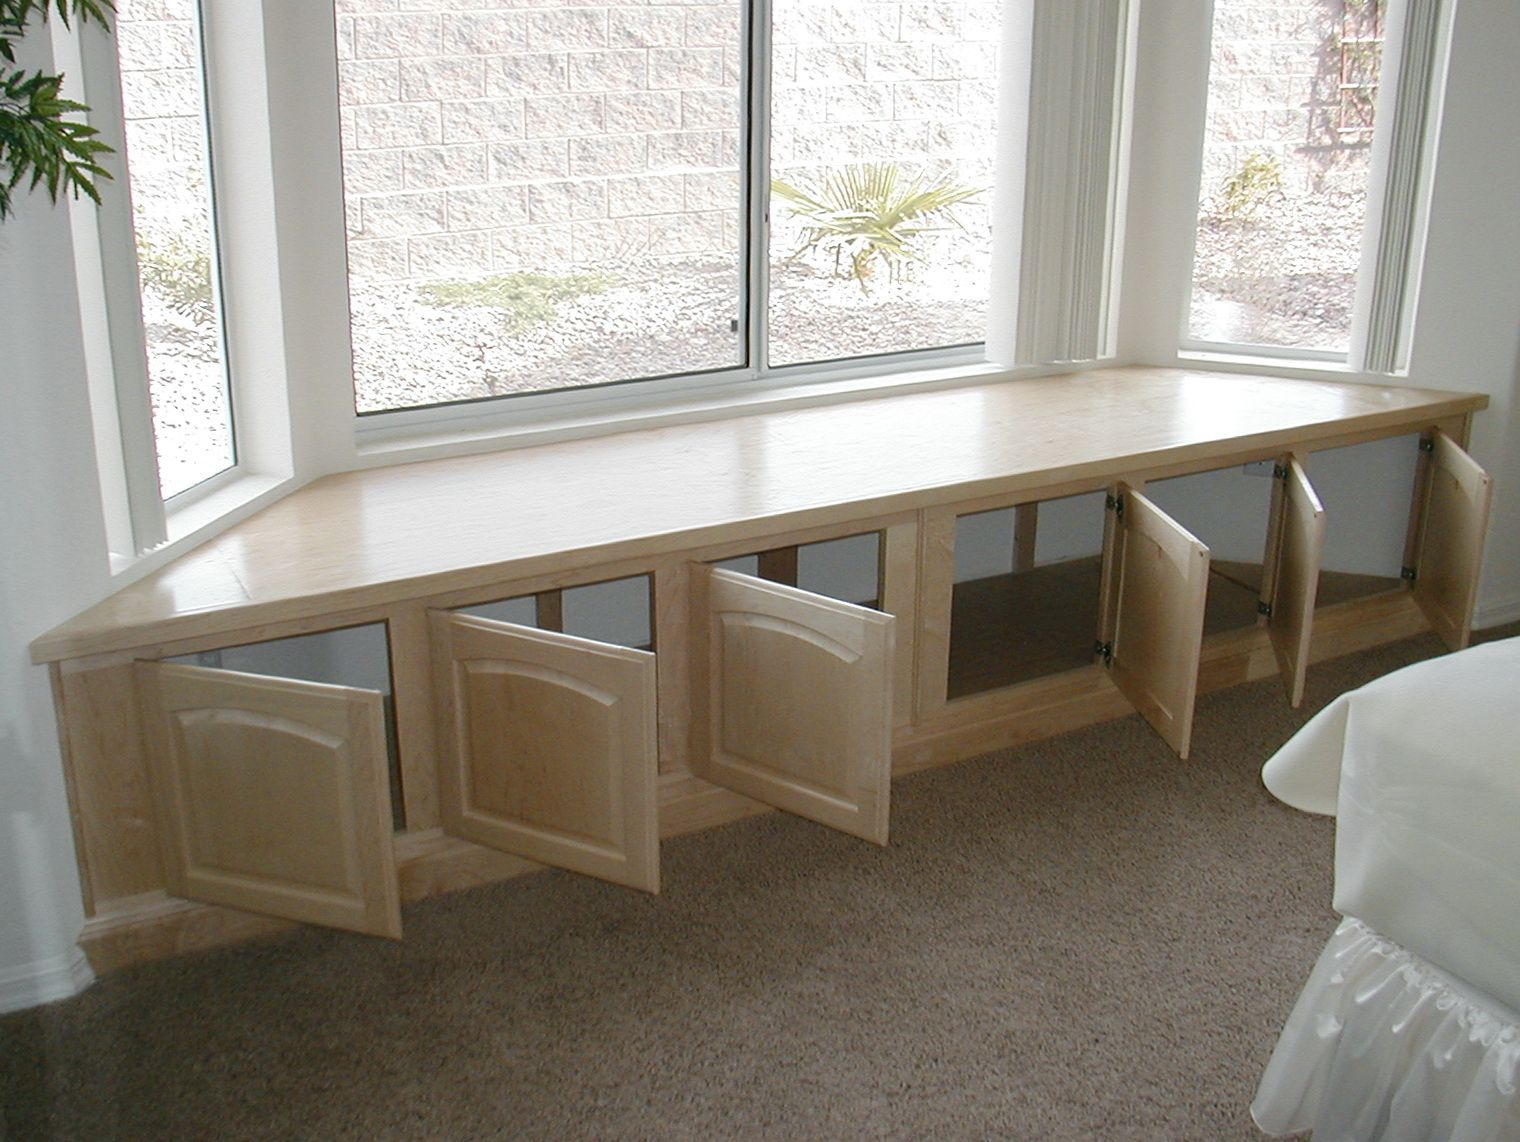 Bay Window Bench In Kitchen Window Seat Storage Bay Window Benches Window Storage Bench